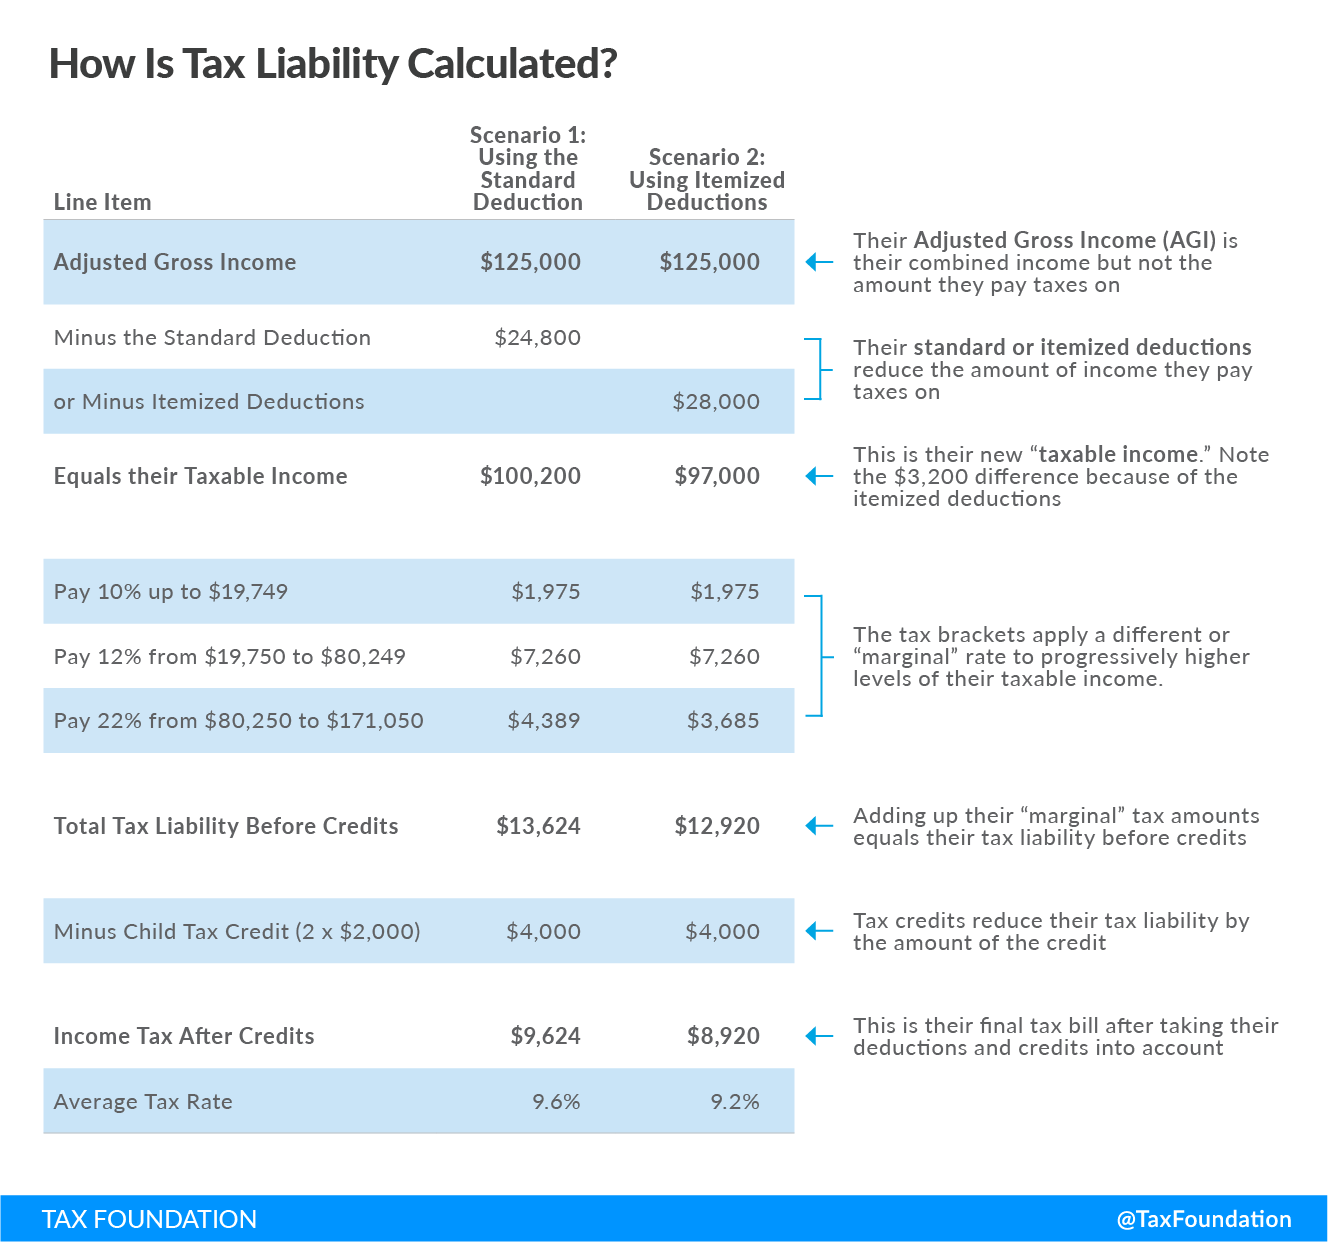 Tax Basics - How Is Tax Liability Calculated